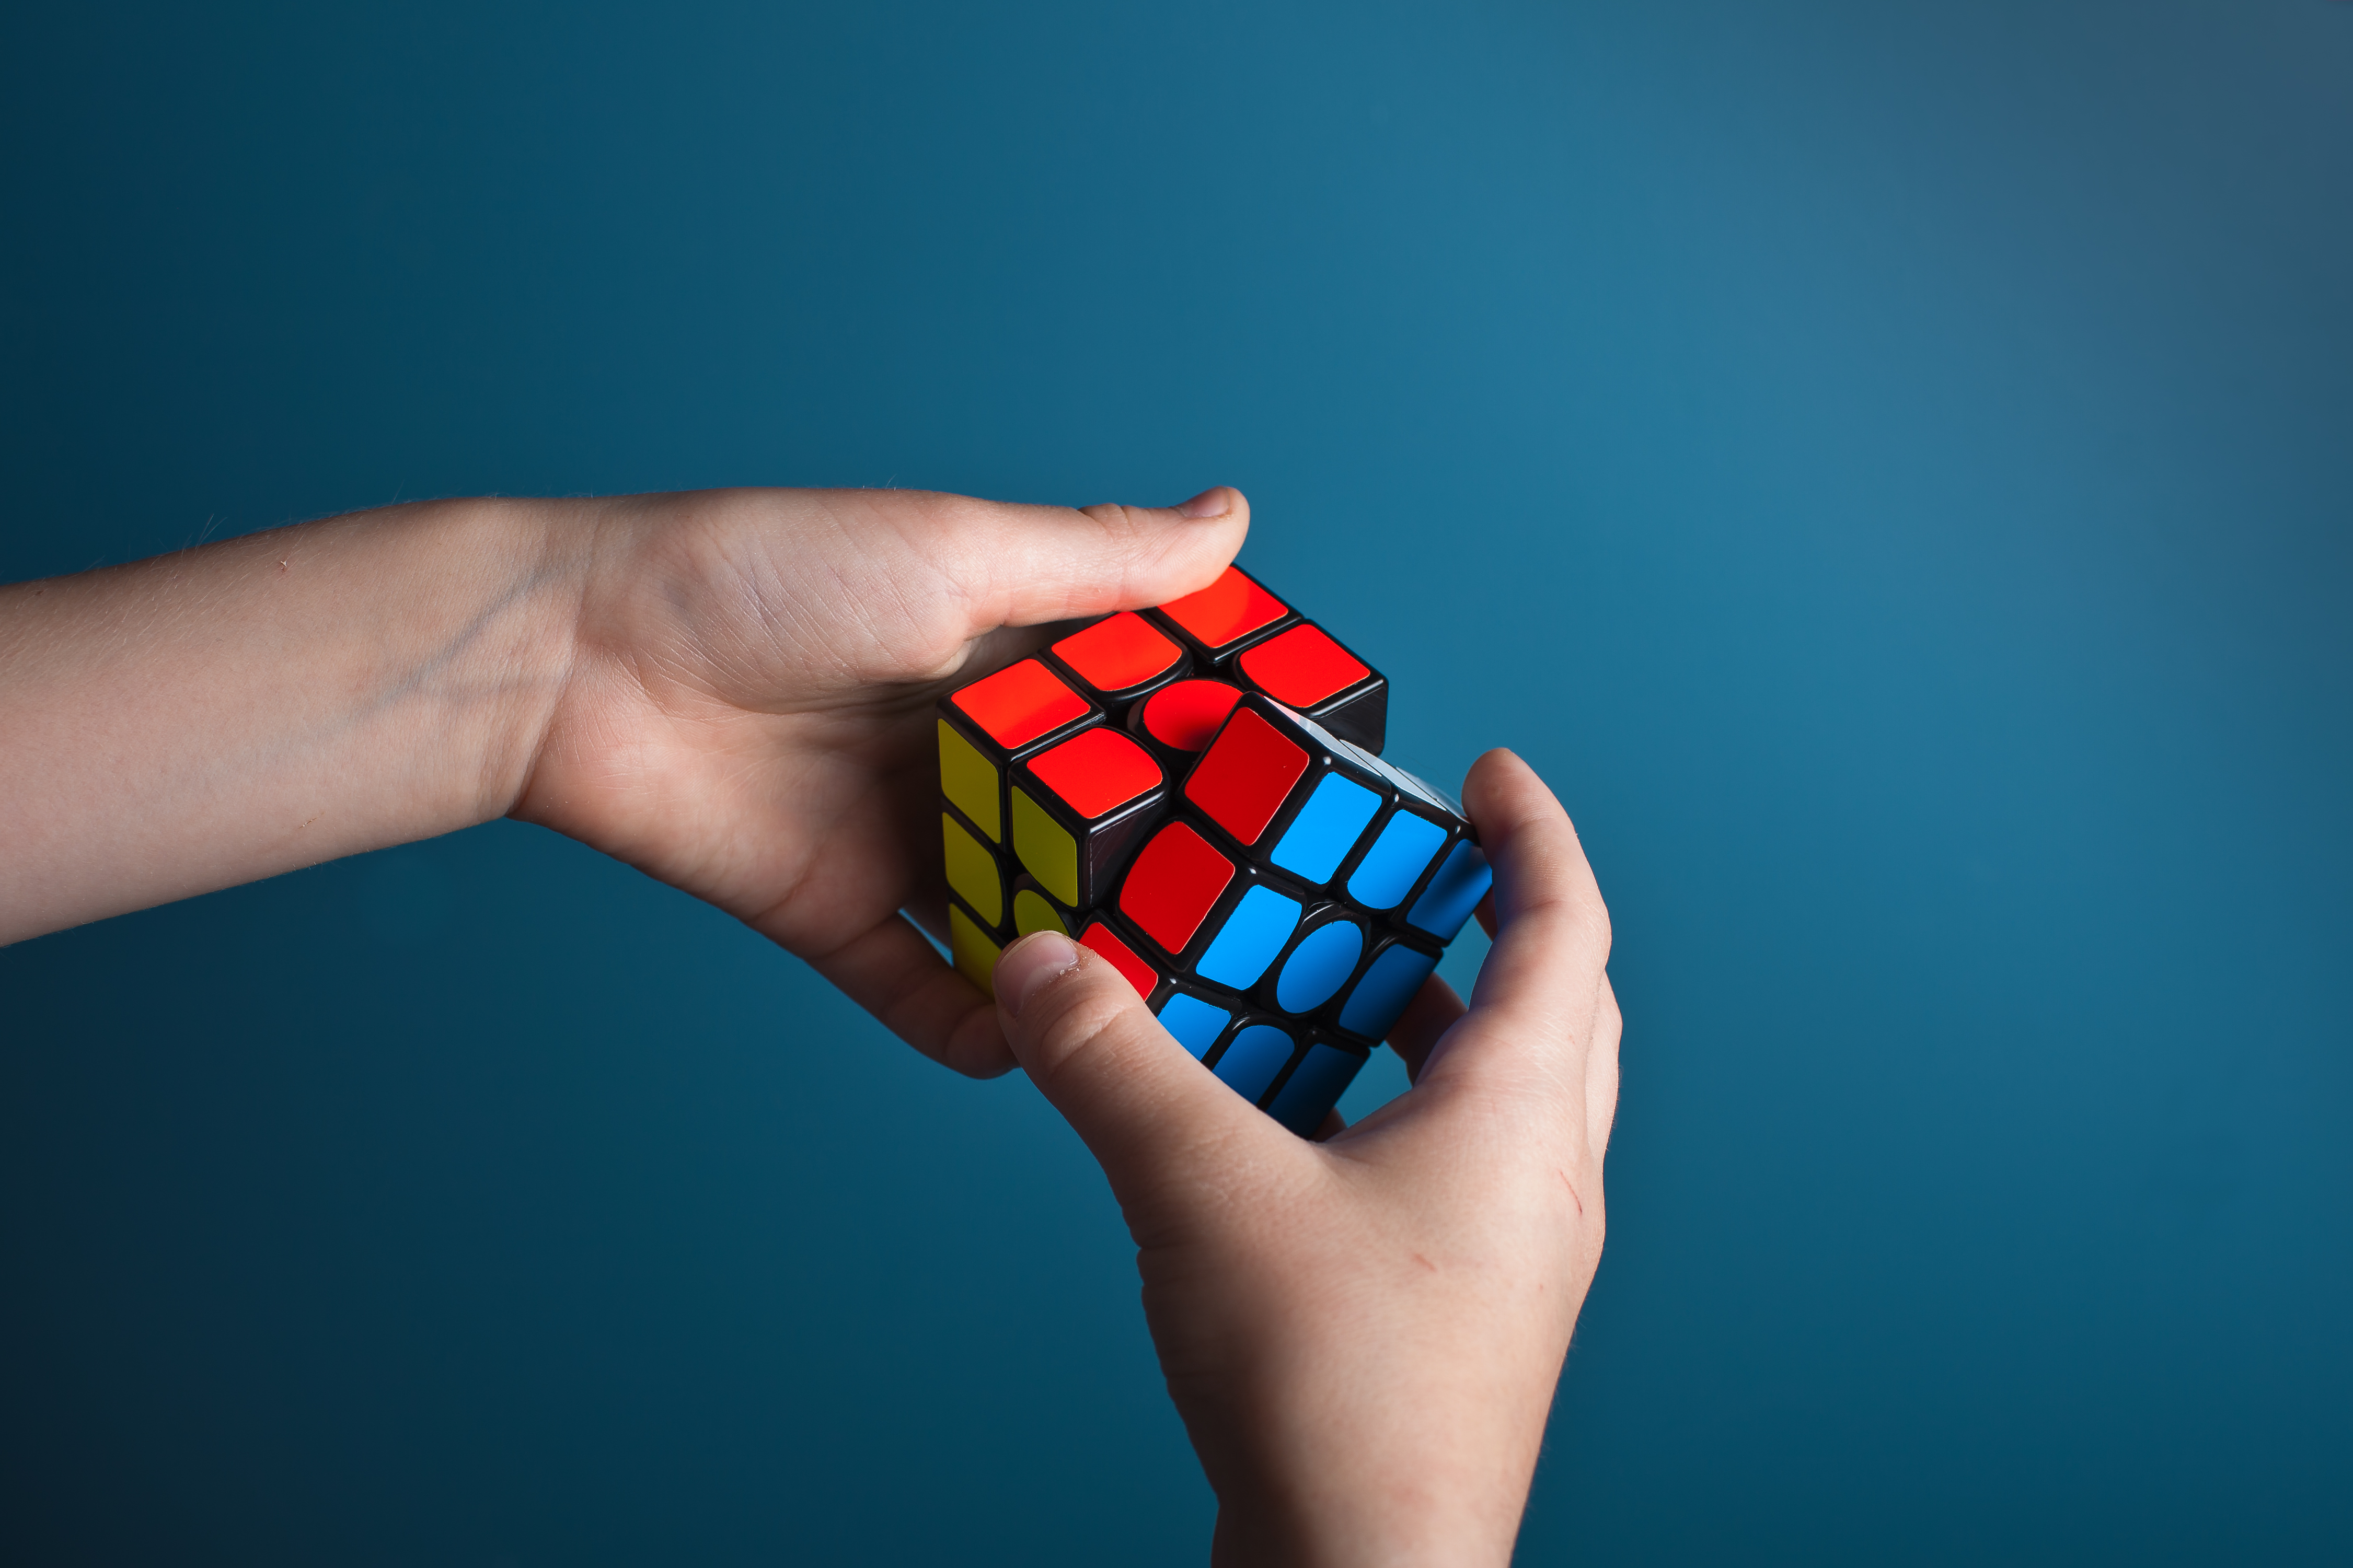 """How To Solve A Rubik\u2019s Cube"""